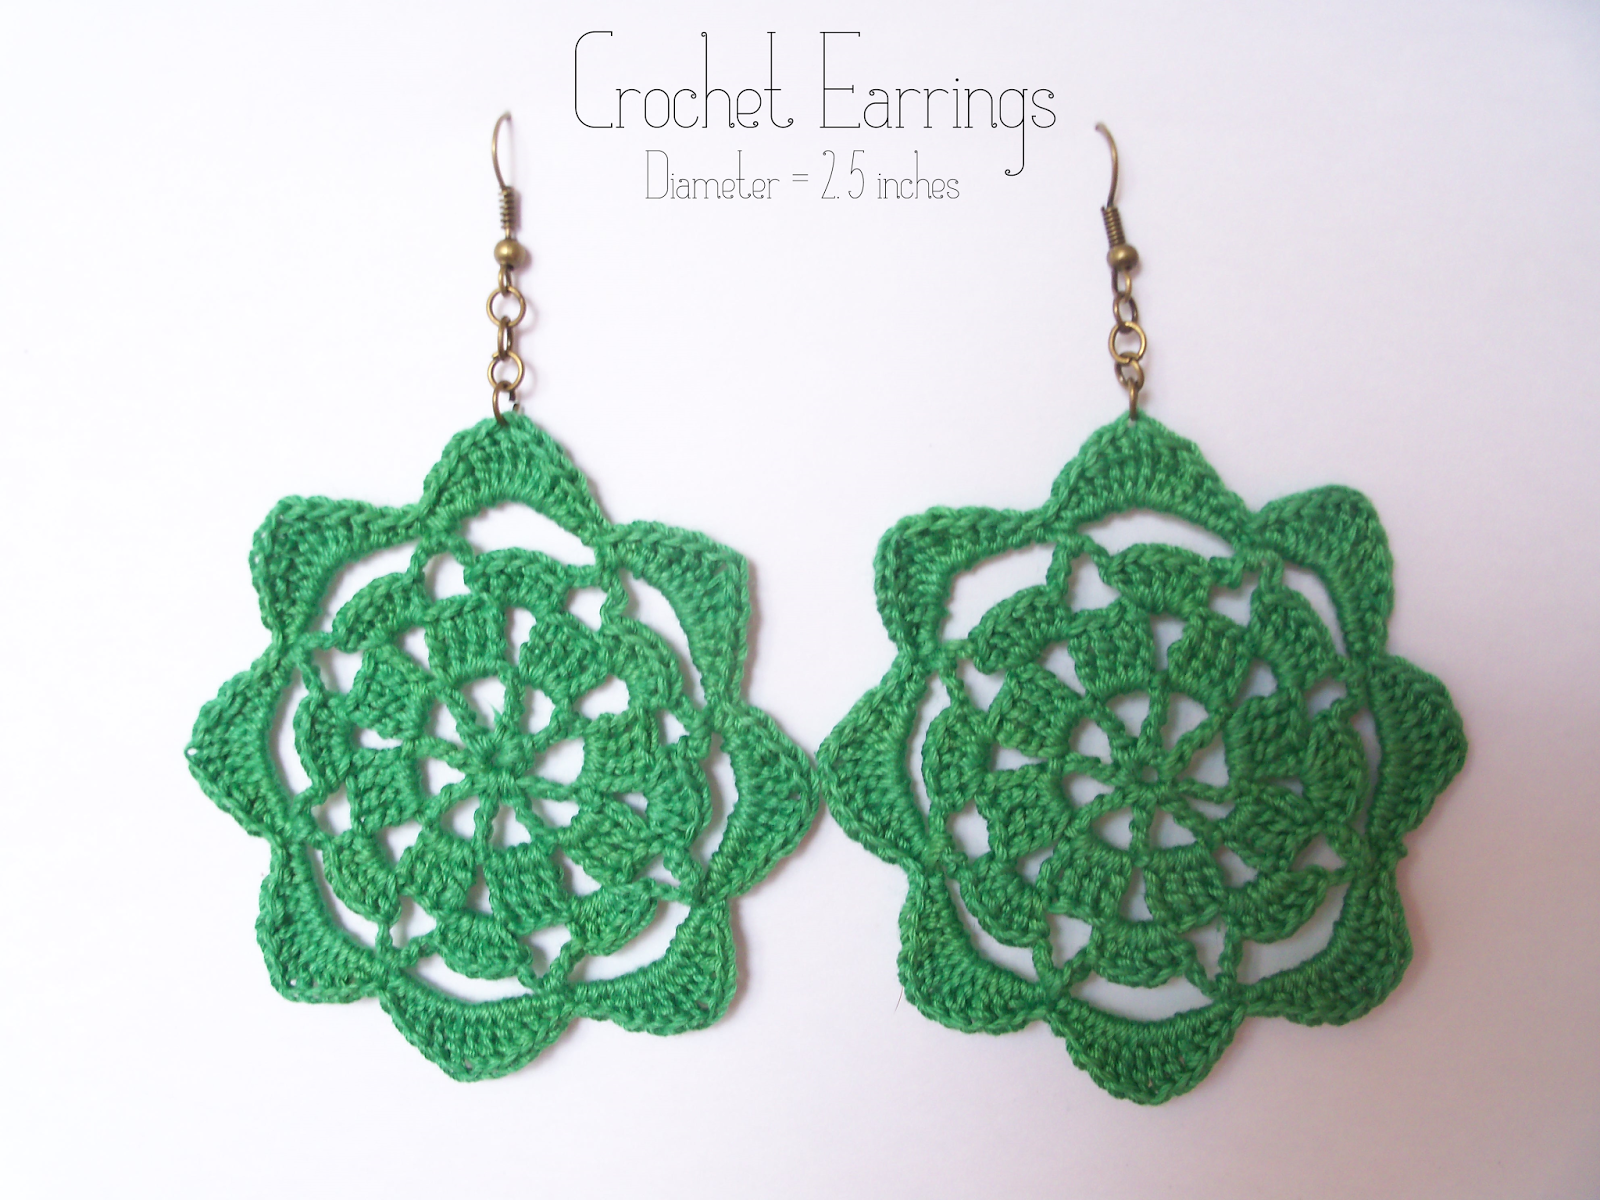 Earrings crochet patterns free juegos